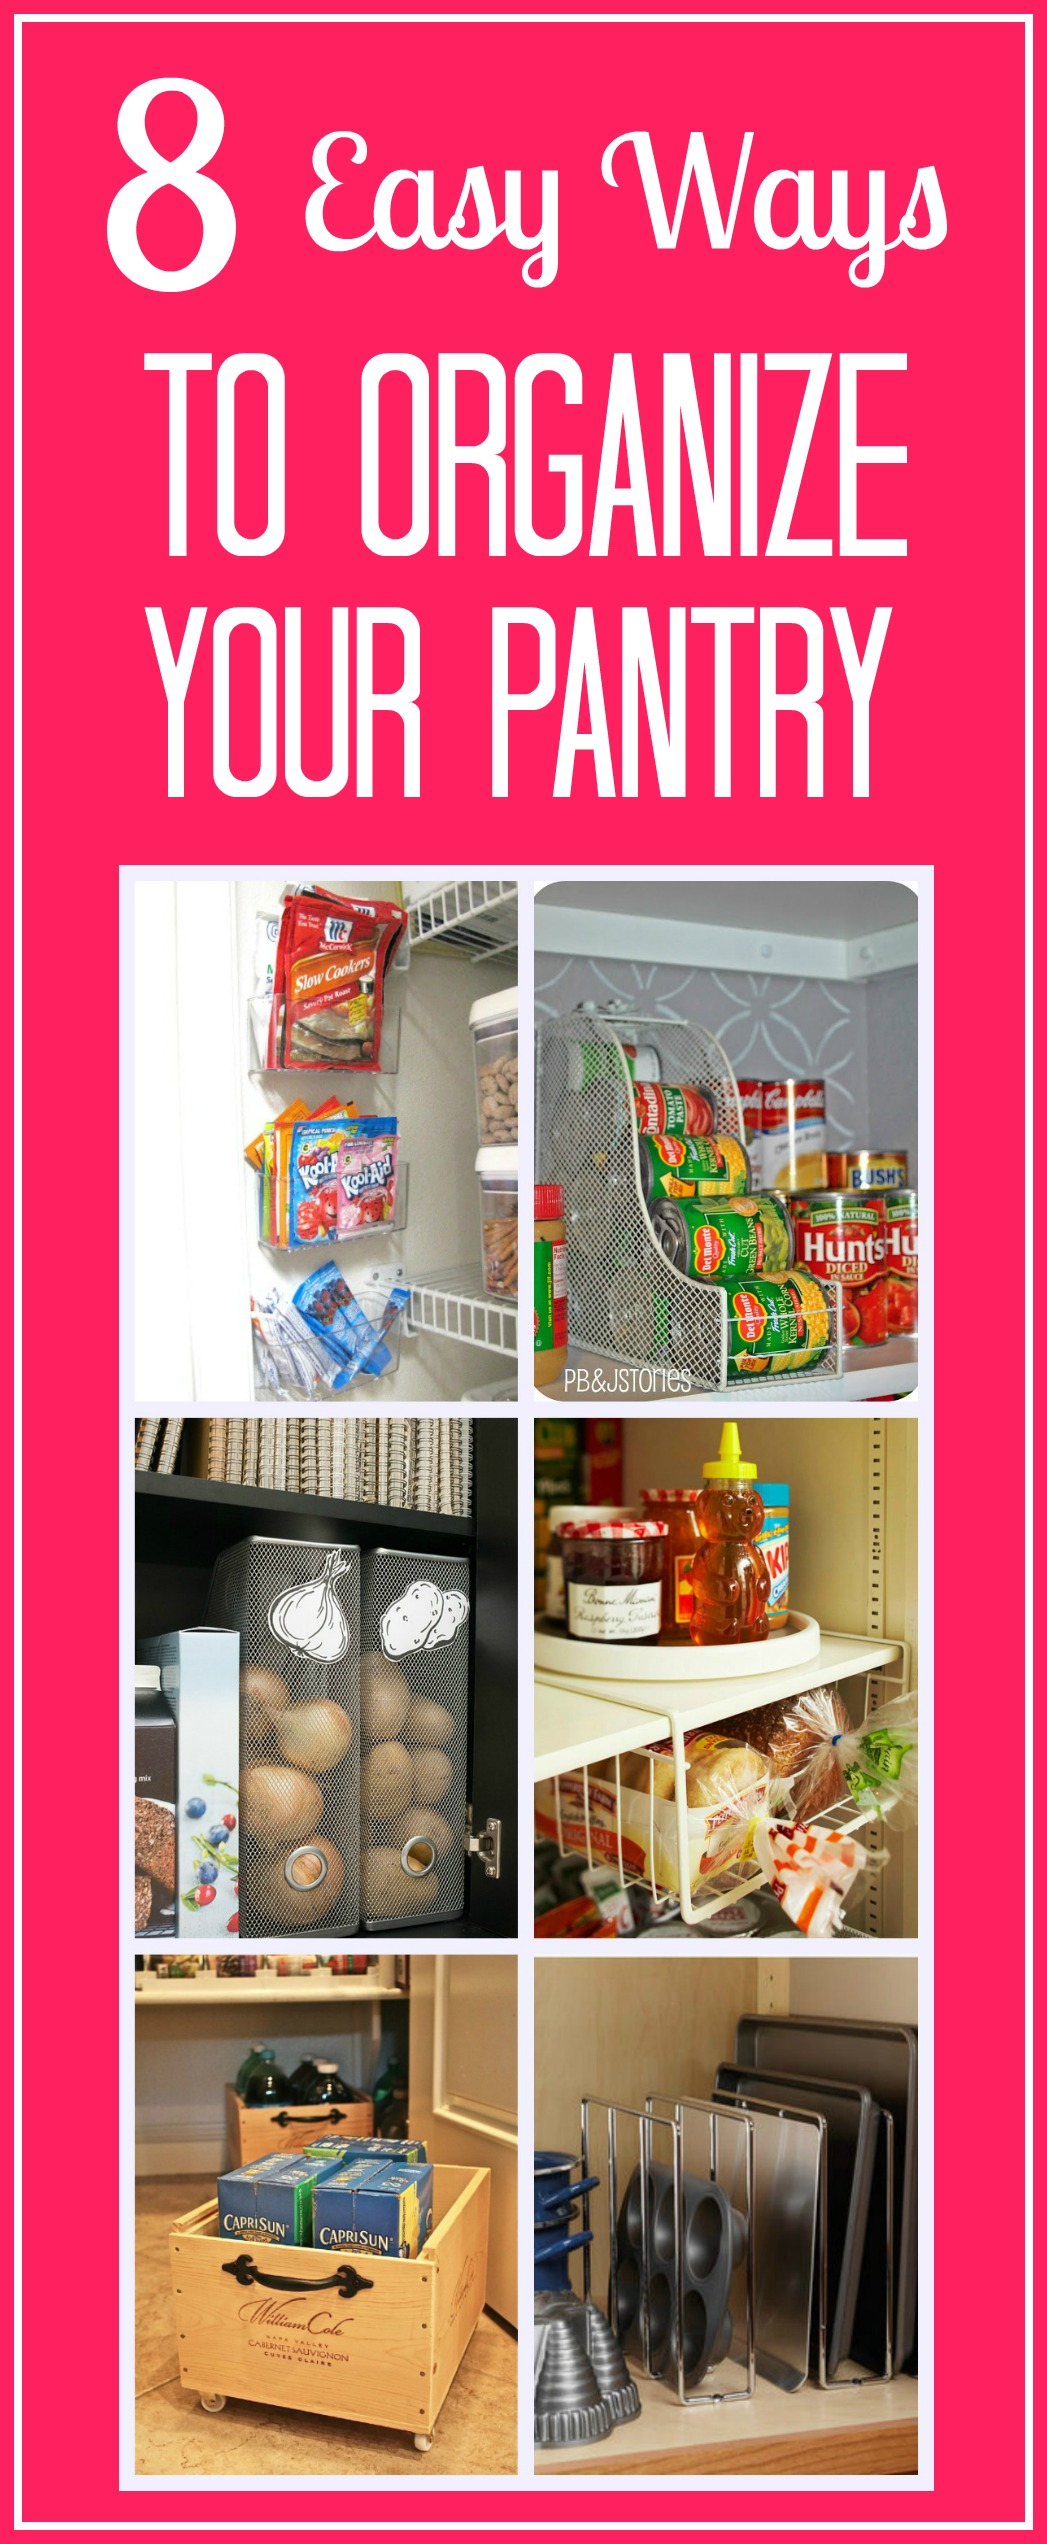 Organize Your Closet With A Capsule Wardrobe: 8 Easy Ways To Organize Your Pantry